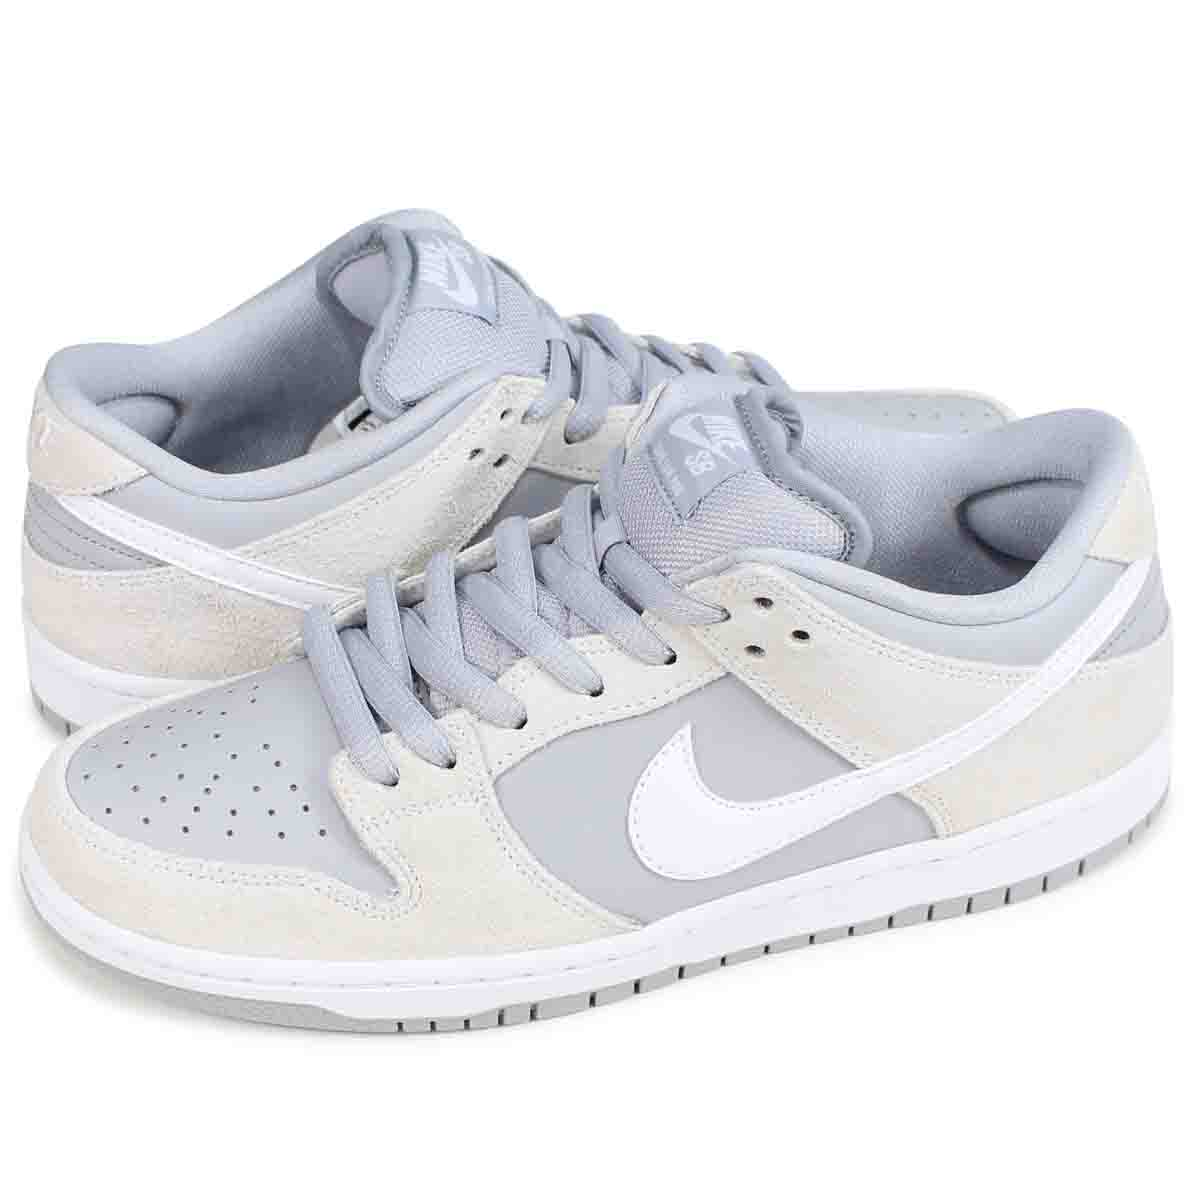 NIKE SB DUNK LOW TRD Nike dunk sneakers men AR0778-110 white  load planned  Shinnyu load in reservation product 8 20 containing  3153ba992be8